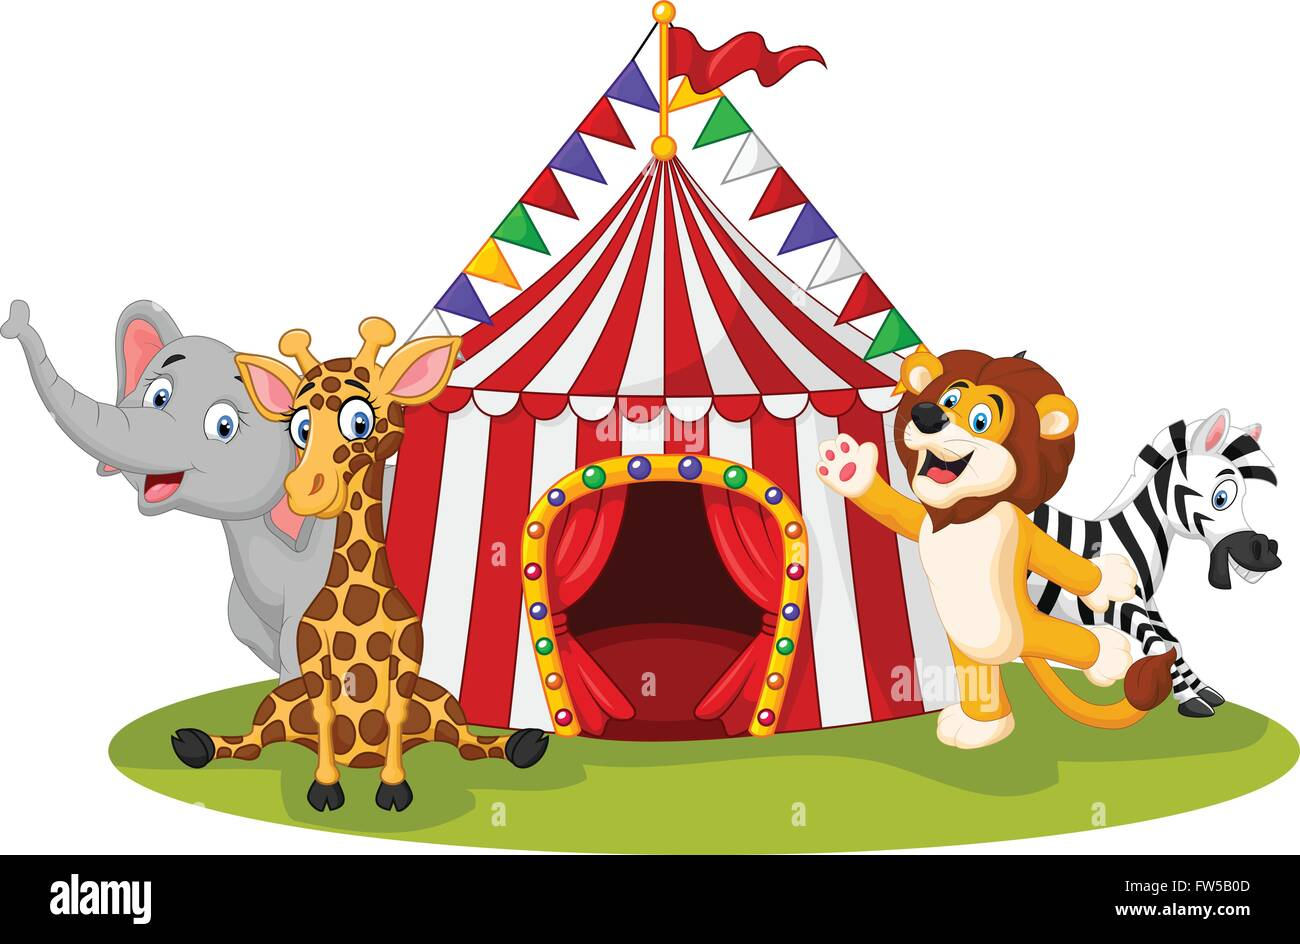 Cartoon animal circus with circus tent  sc 1 st  Alamy & Cartoon animal circus with circus tent Stock Vector Art ...